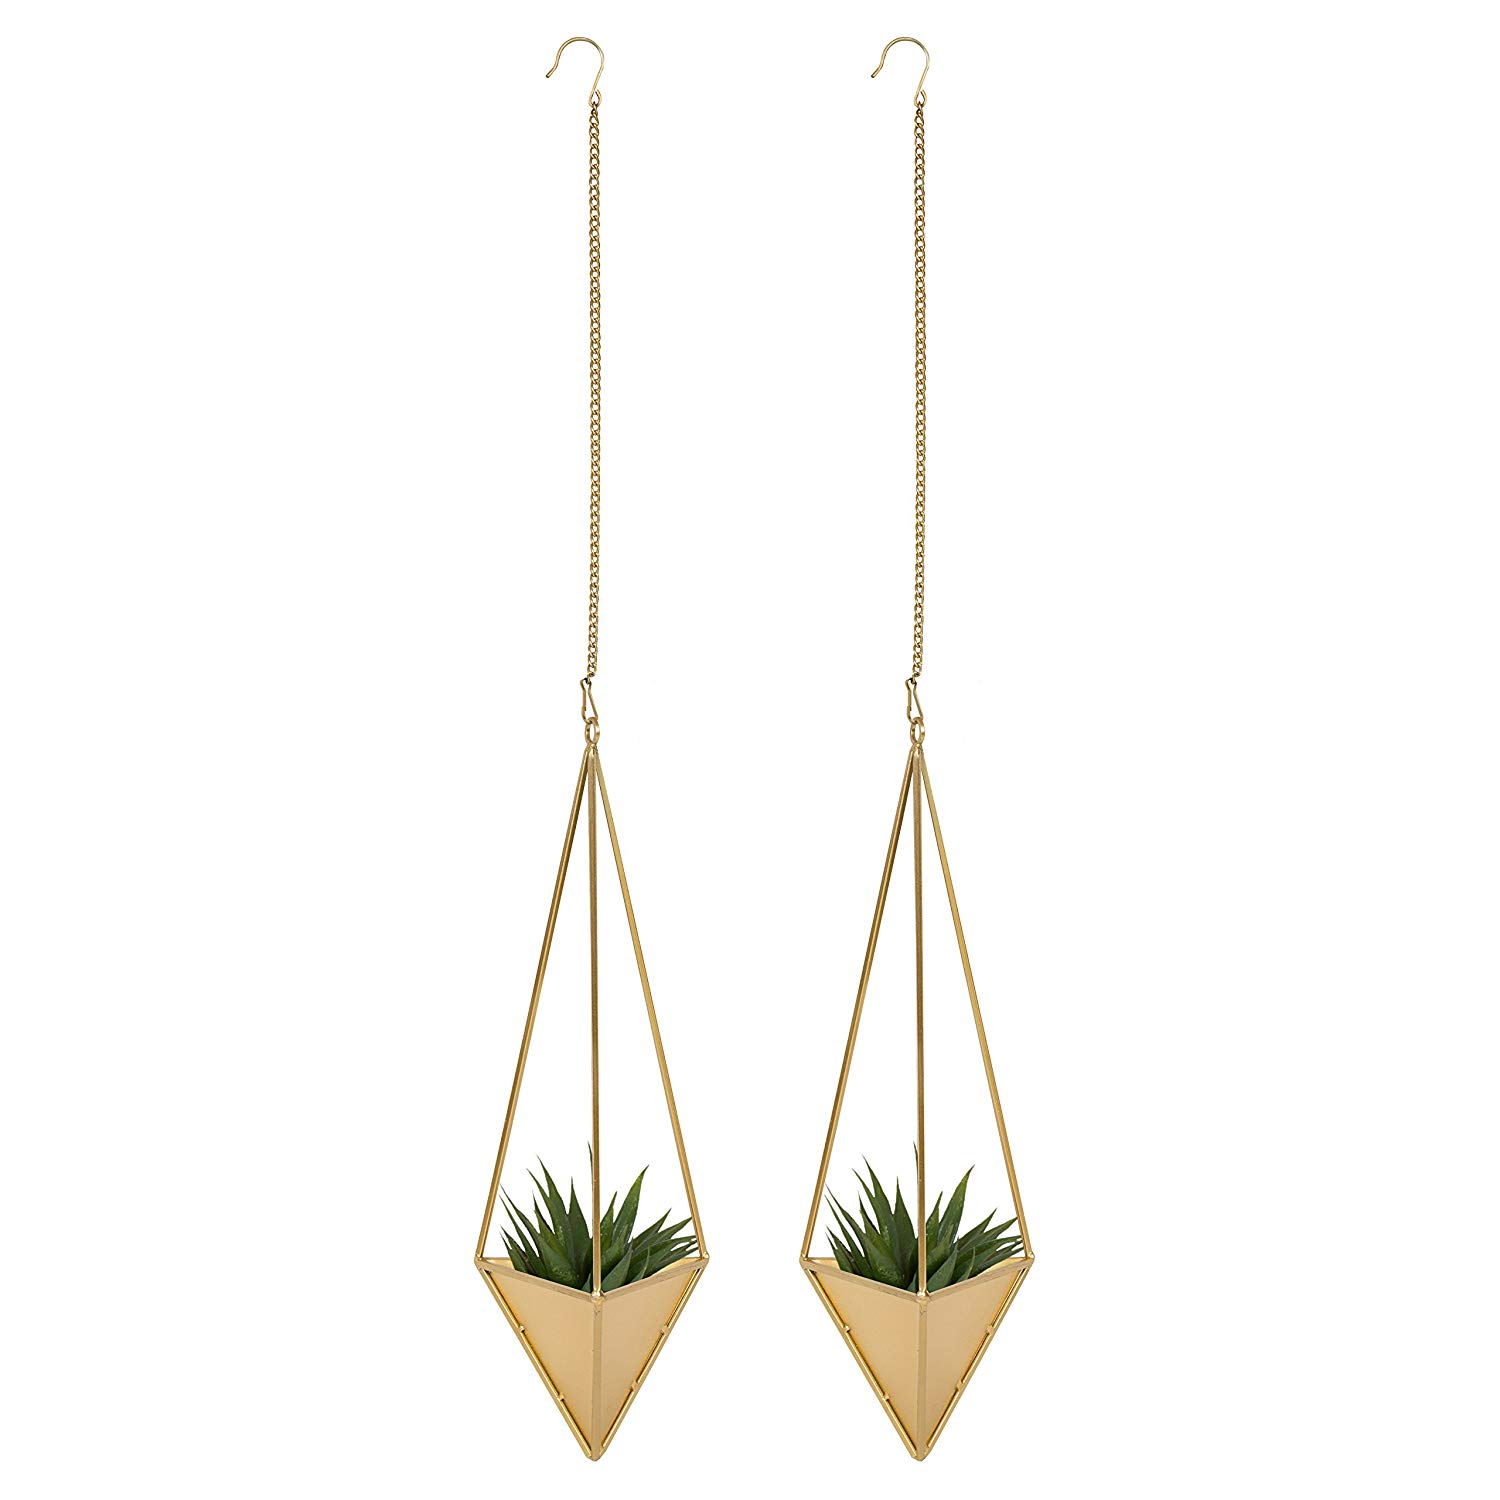 Kate and Laurel Aventura Modern Geometric 2 pc Hanging Planter Set for Small Plants, Gold, 7.25-inches wide x 6.5-inches deep x 40-inches high (with chain)